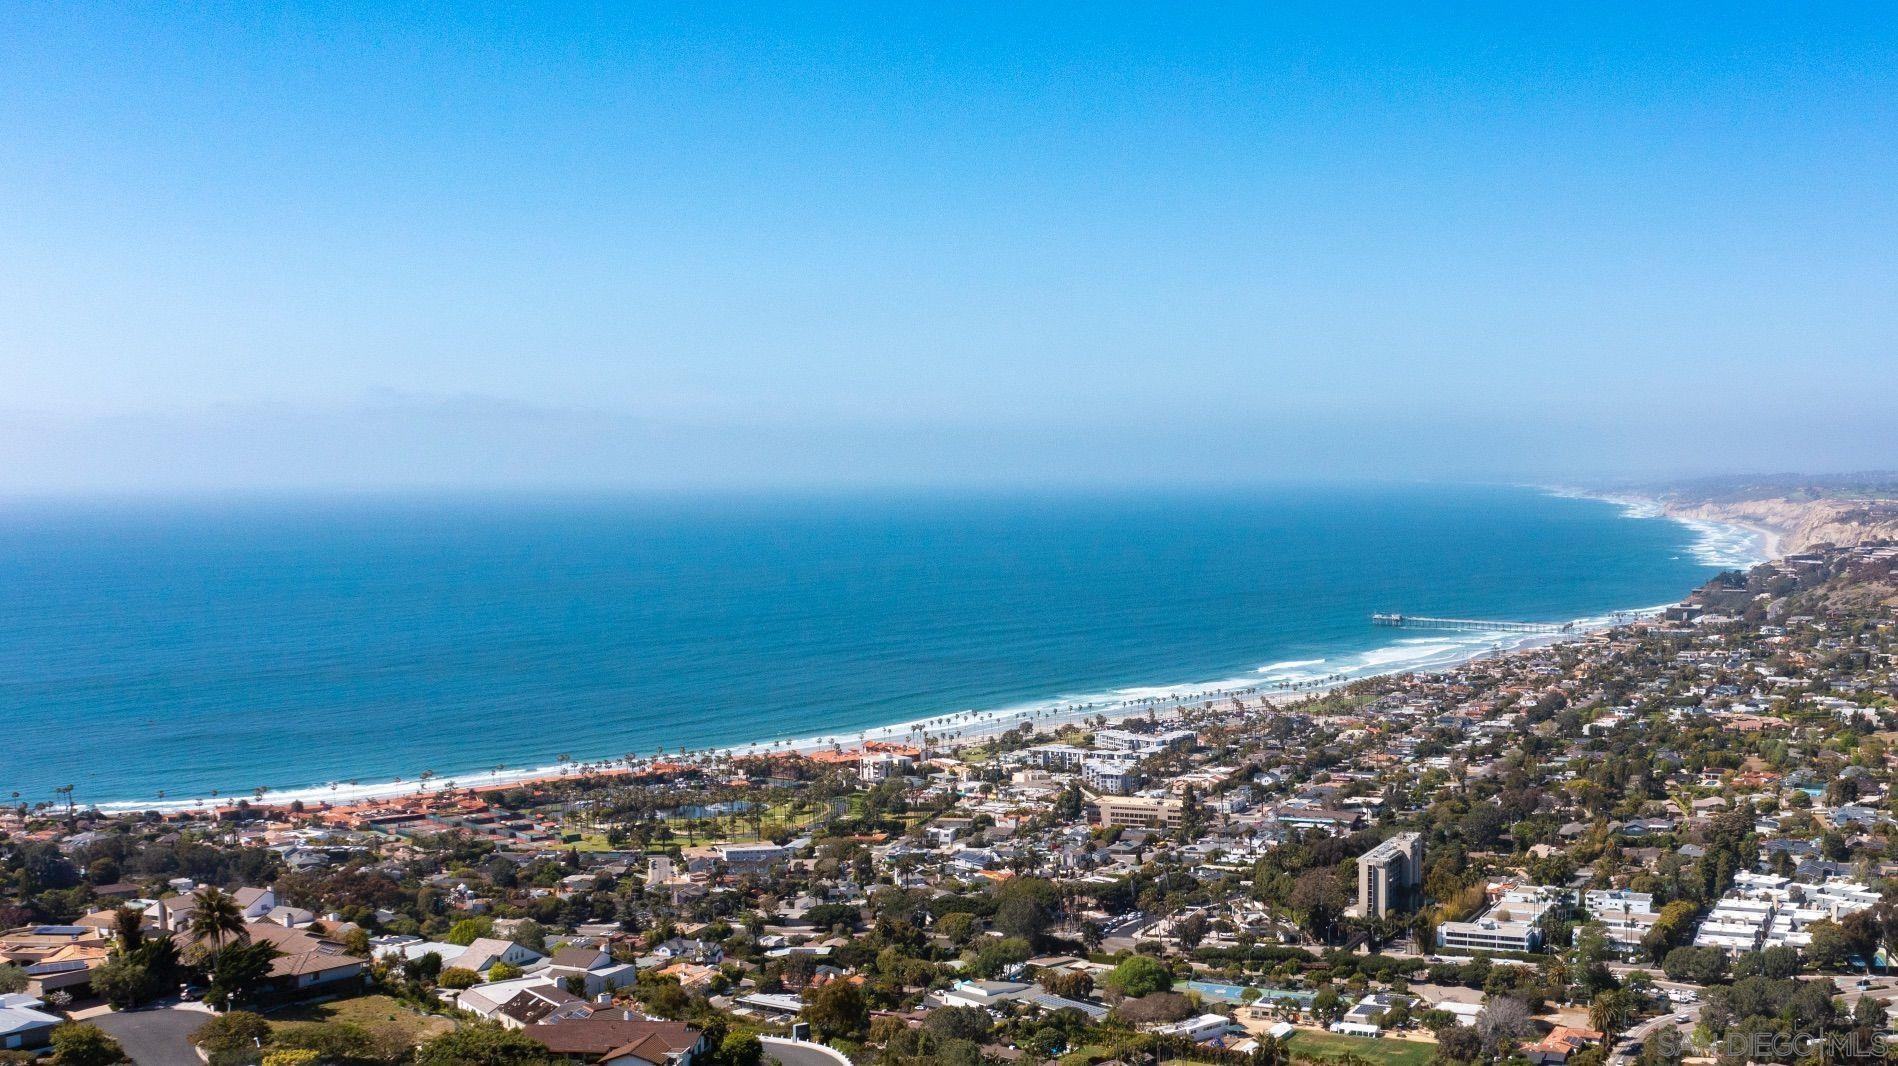 """Magnificent single level with pleasing Ocean and City view . Extraordinary location close to the most beautiful """"La Jolla Shores Beach"""",  Restaurants, shops and easy access to Freeway, 180o Ocean view, This is a North Shores location, you can enjoy the Sunset view, quiet street and a lot of space to park. Very rare to find a one single level with a magnificent ocean view, you can't miss this opportunity . This has a great oversized back patio for your out door enjoyment. Beautiful upgrades, wood, granite Kitchen counter top and Quartz bathrooms counter tops , House was remodeled on 2016 with many upgrades."""